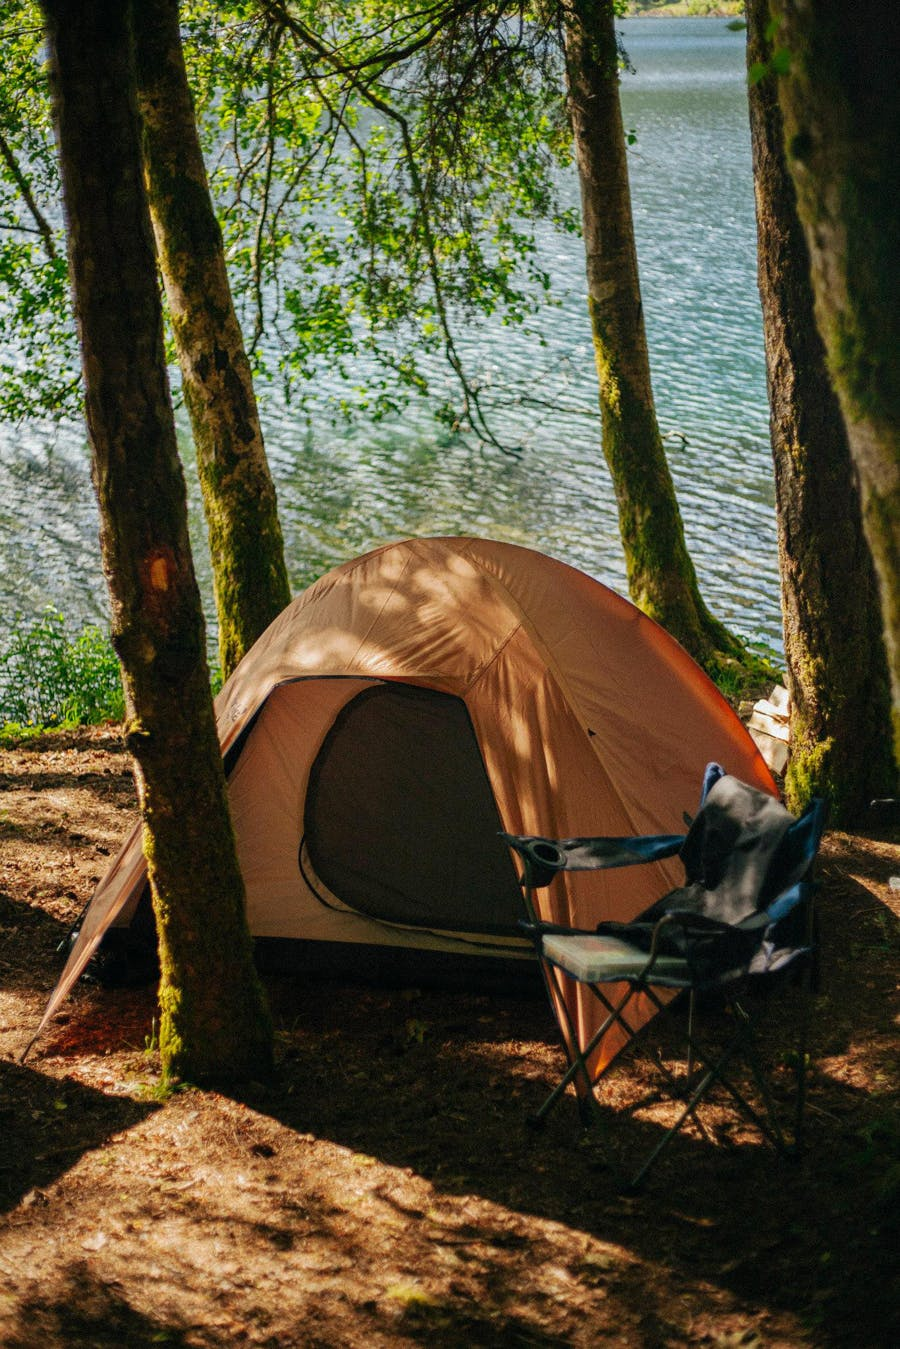 Campsite - Lake Crescent - Jordan Butcher